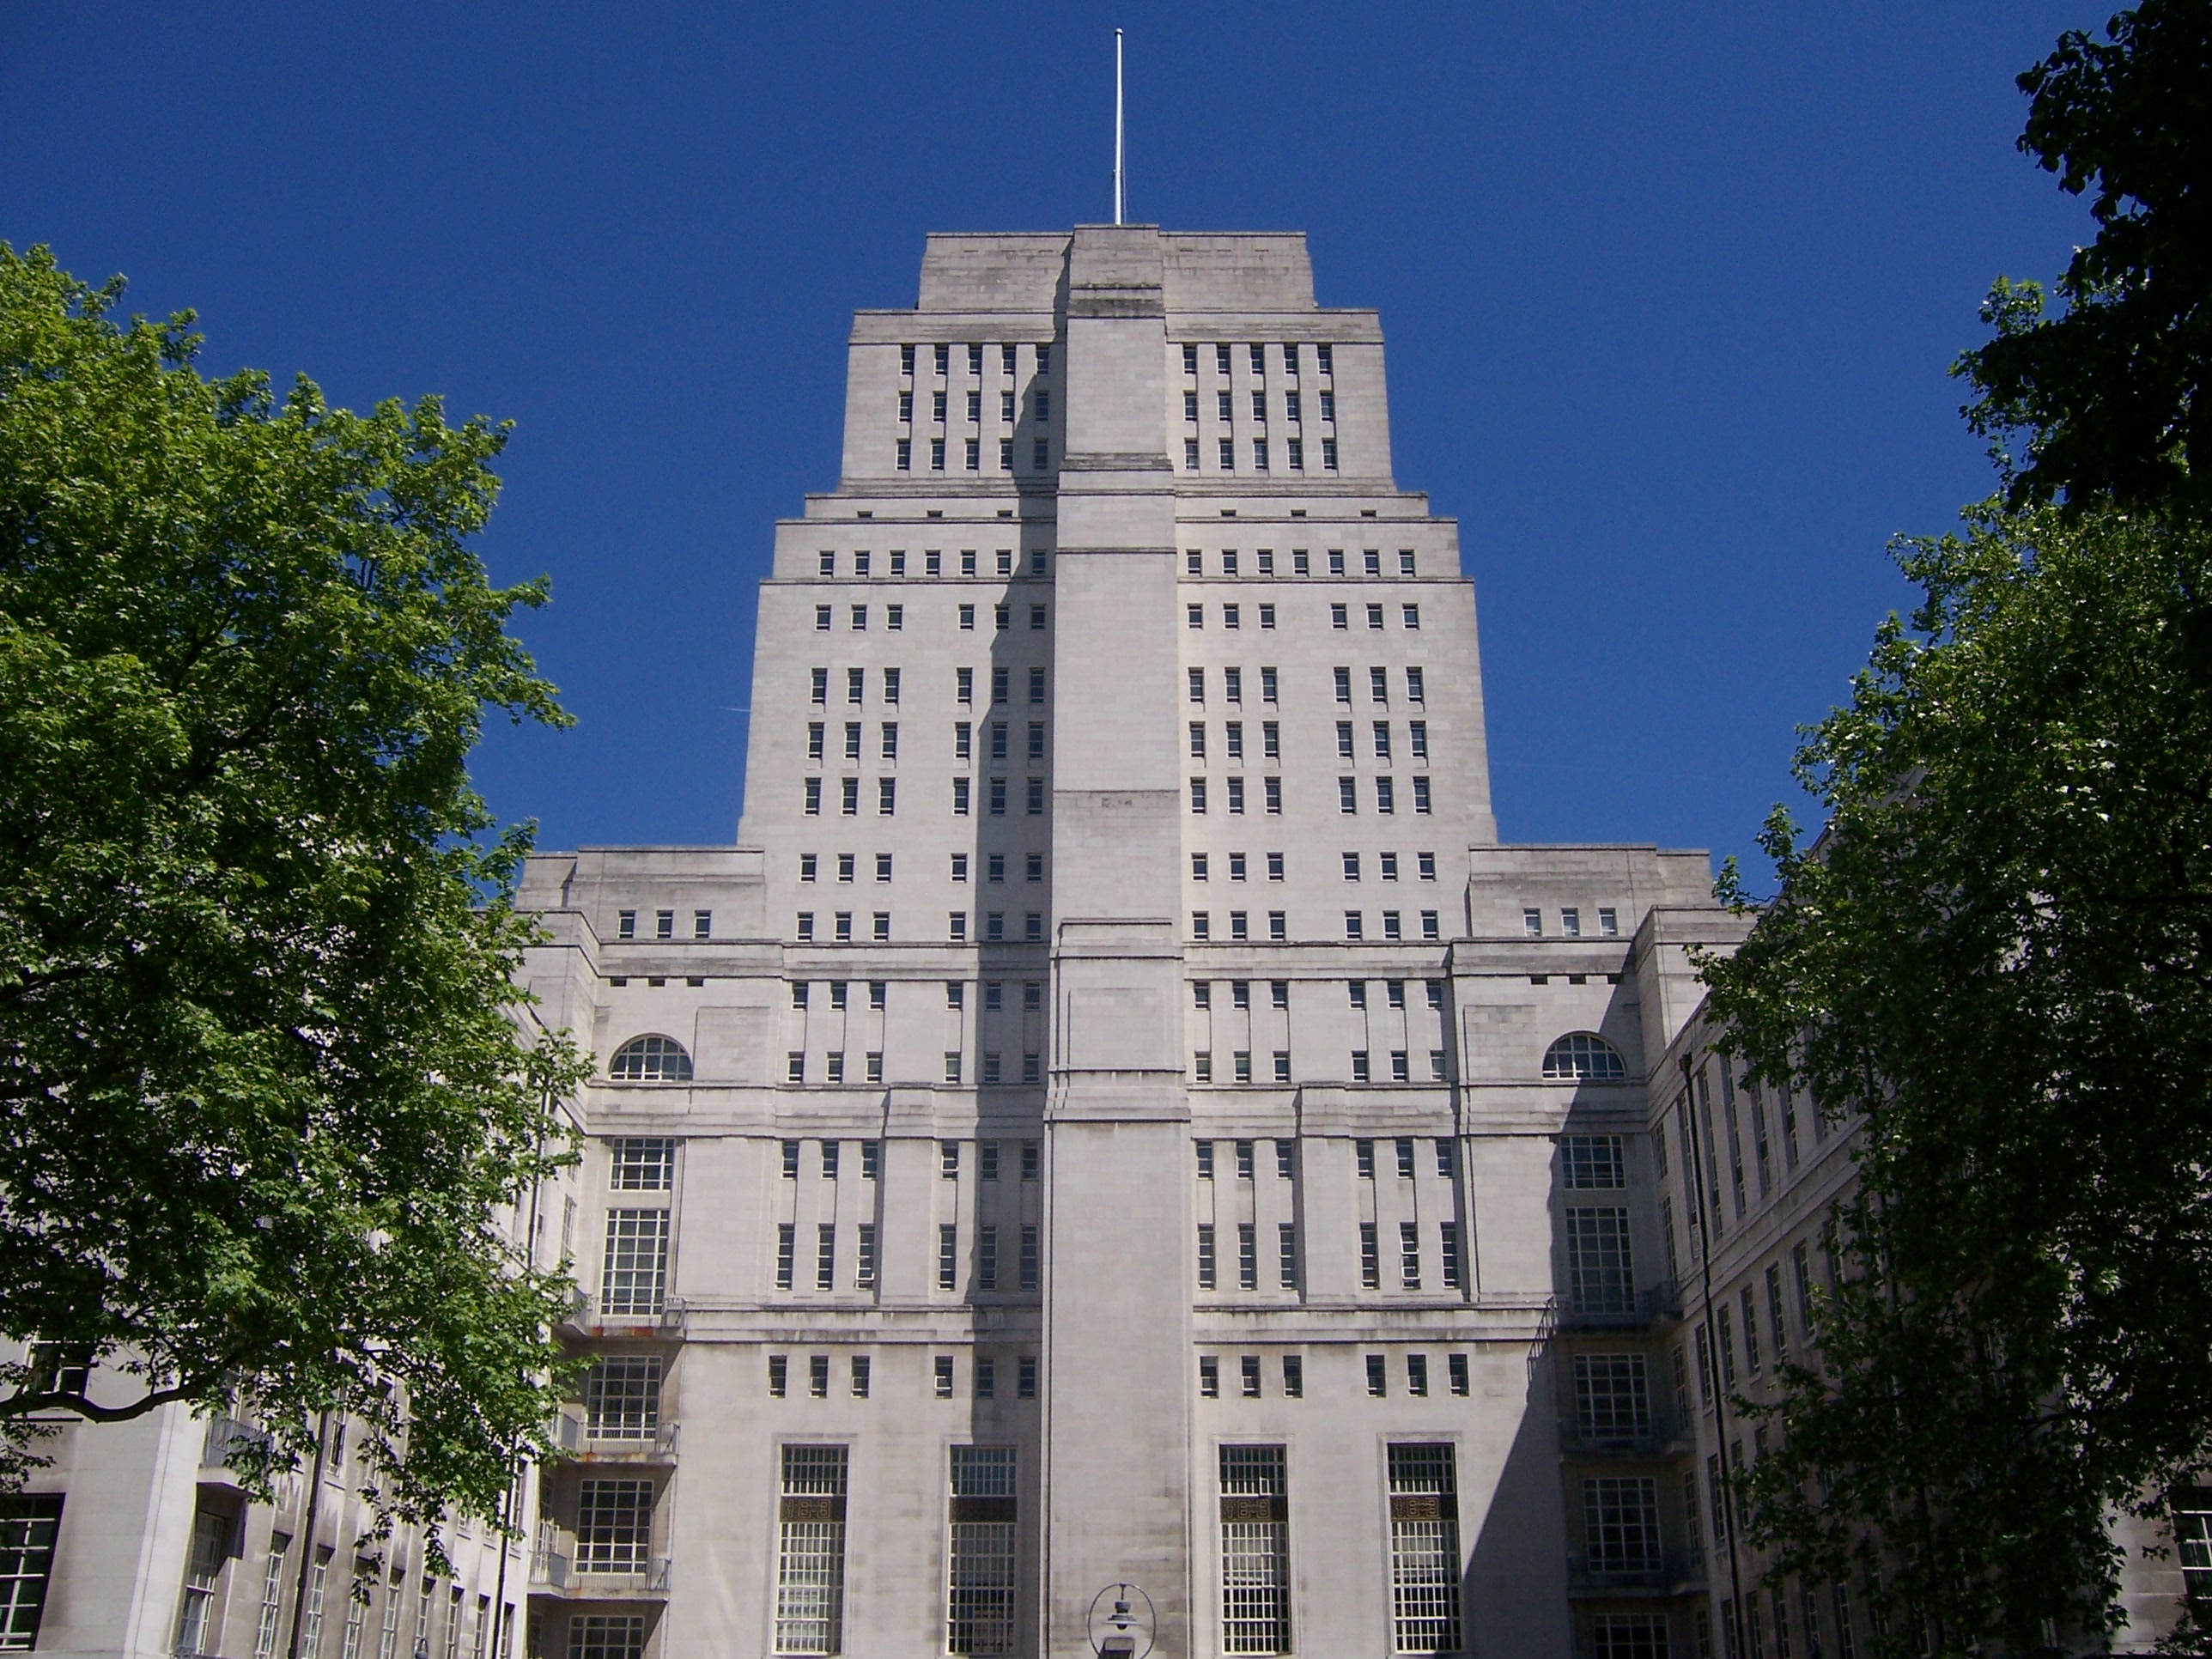 image of University of London